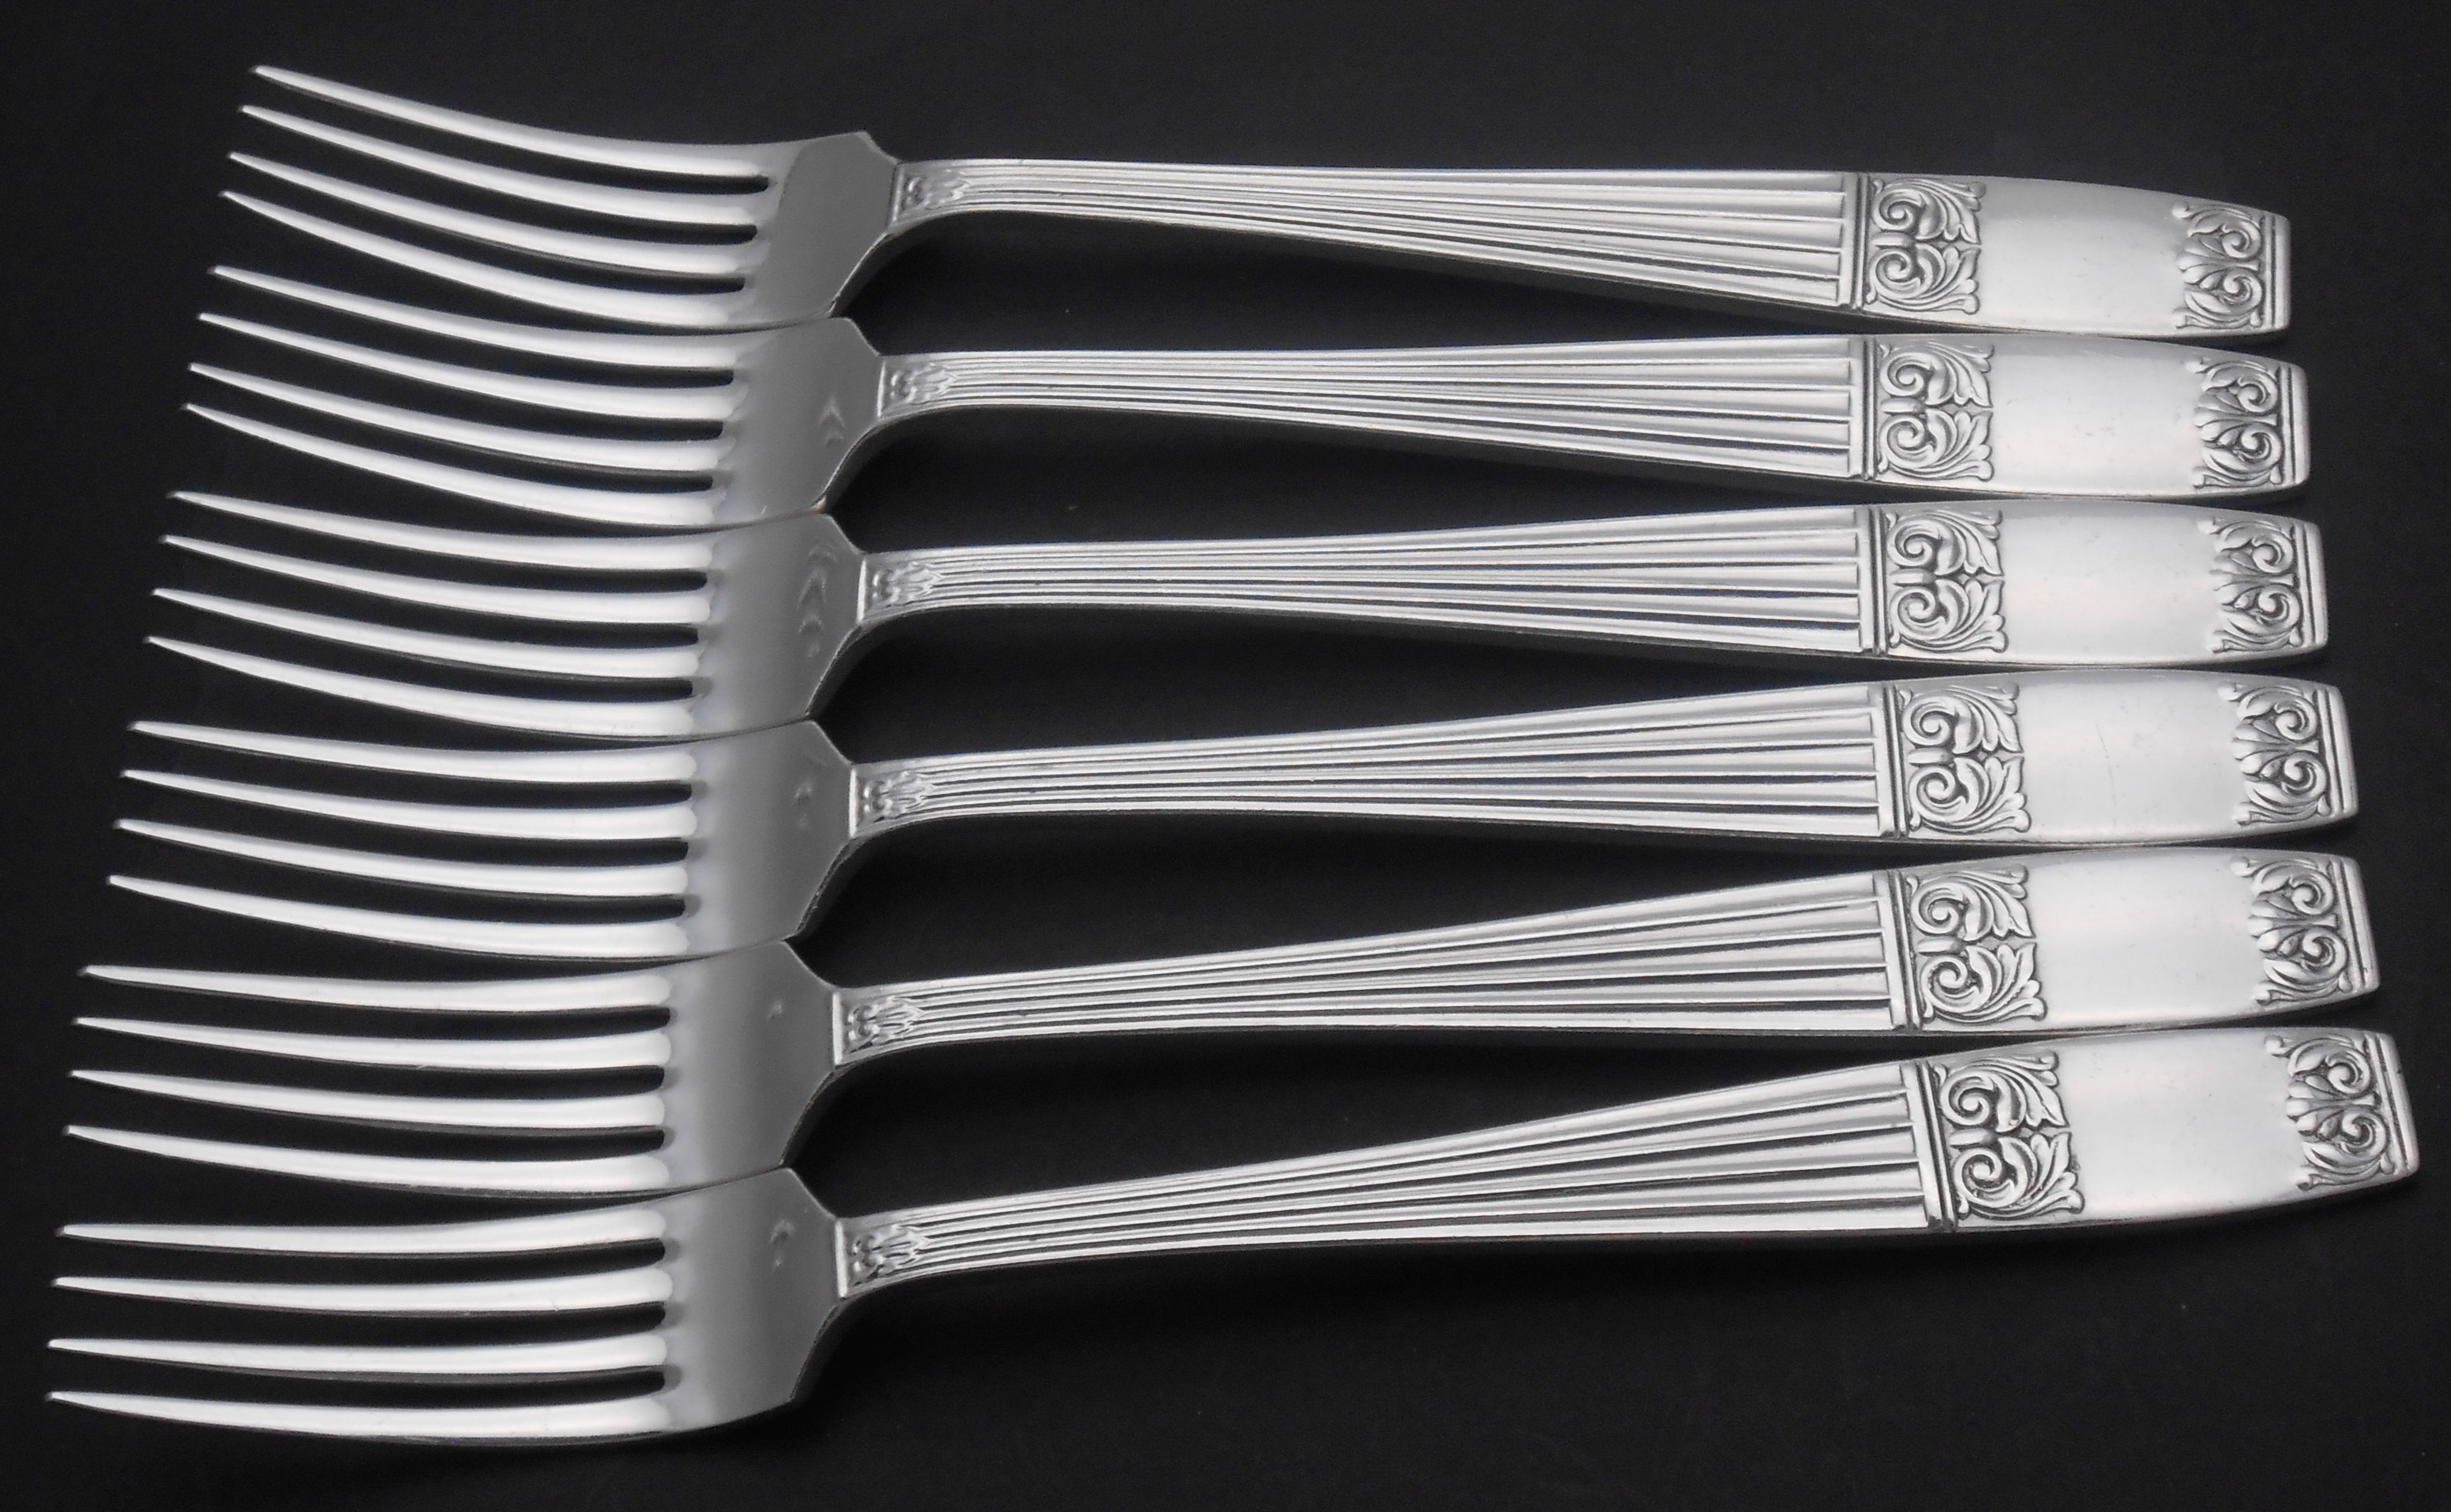 Elkington Westminster pattern cutlery / flatware